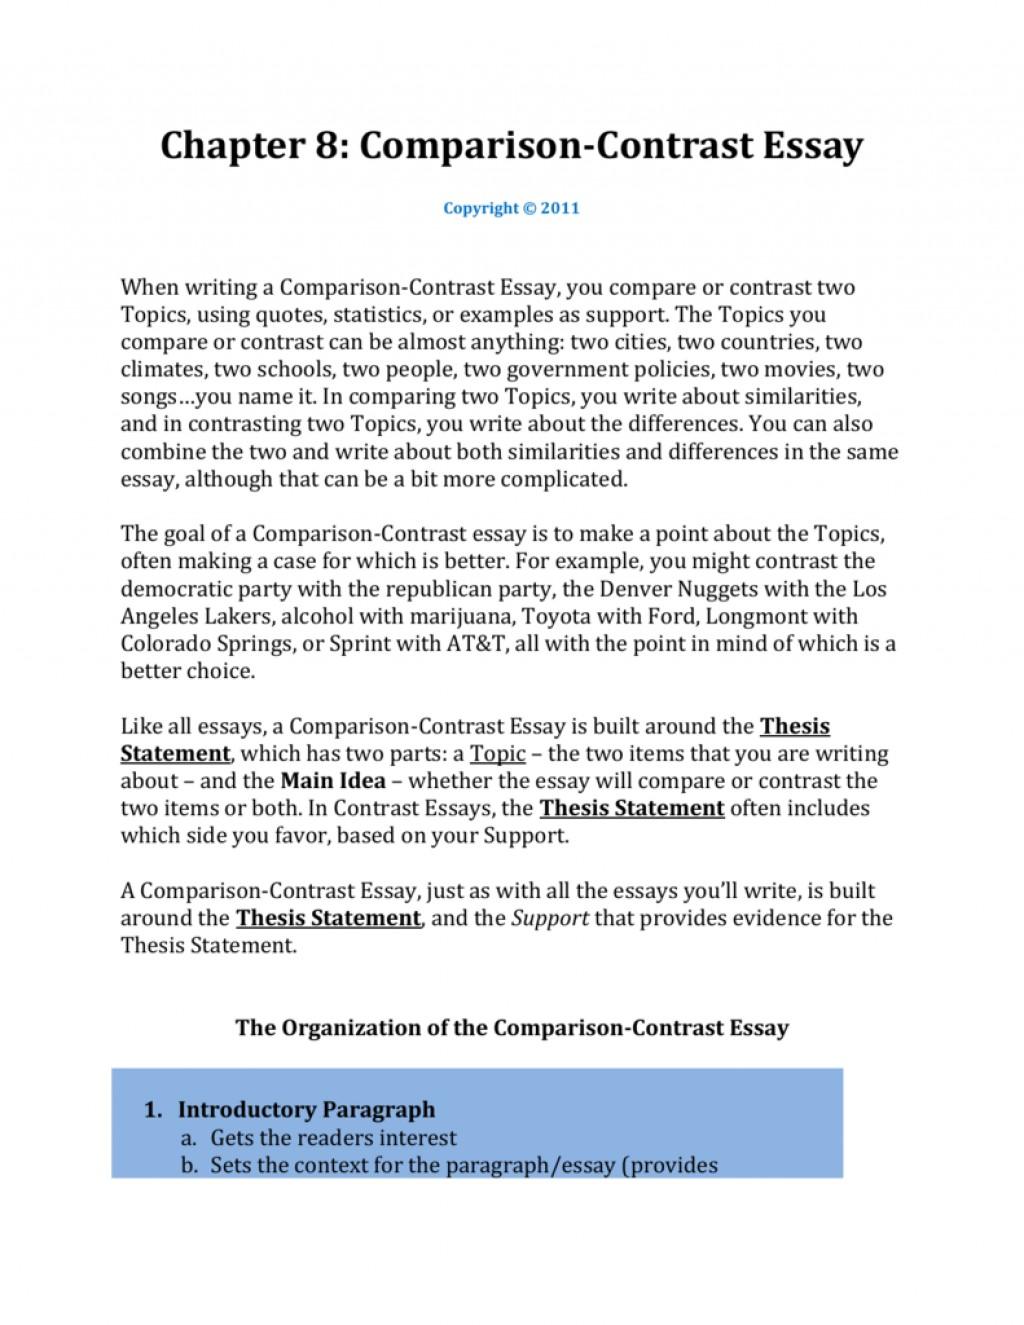 007 Examples Of Compare And Contrast Essays Essay Example 007207405 1 Unique Samples For College Comparison Topics Fifth Grade Large